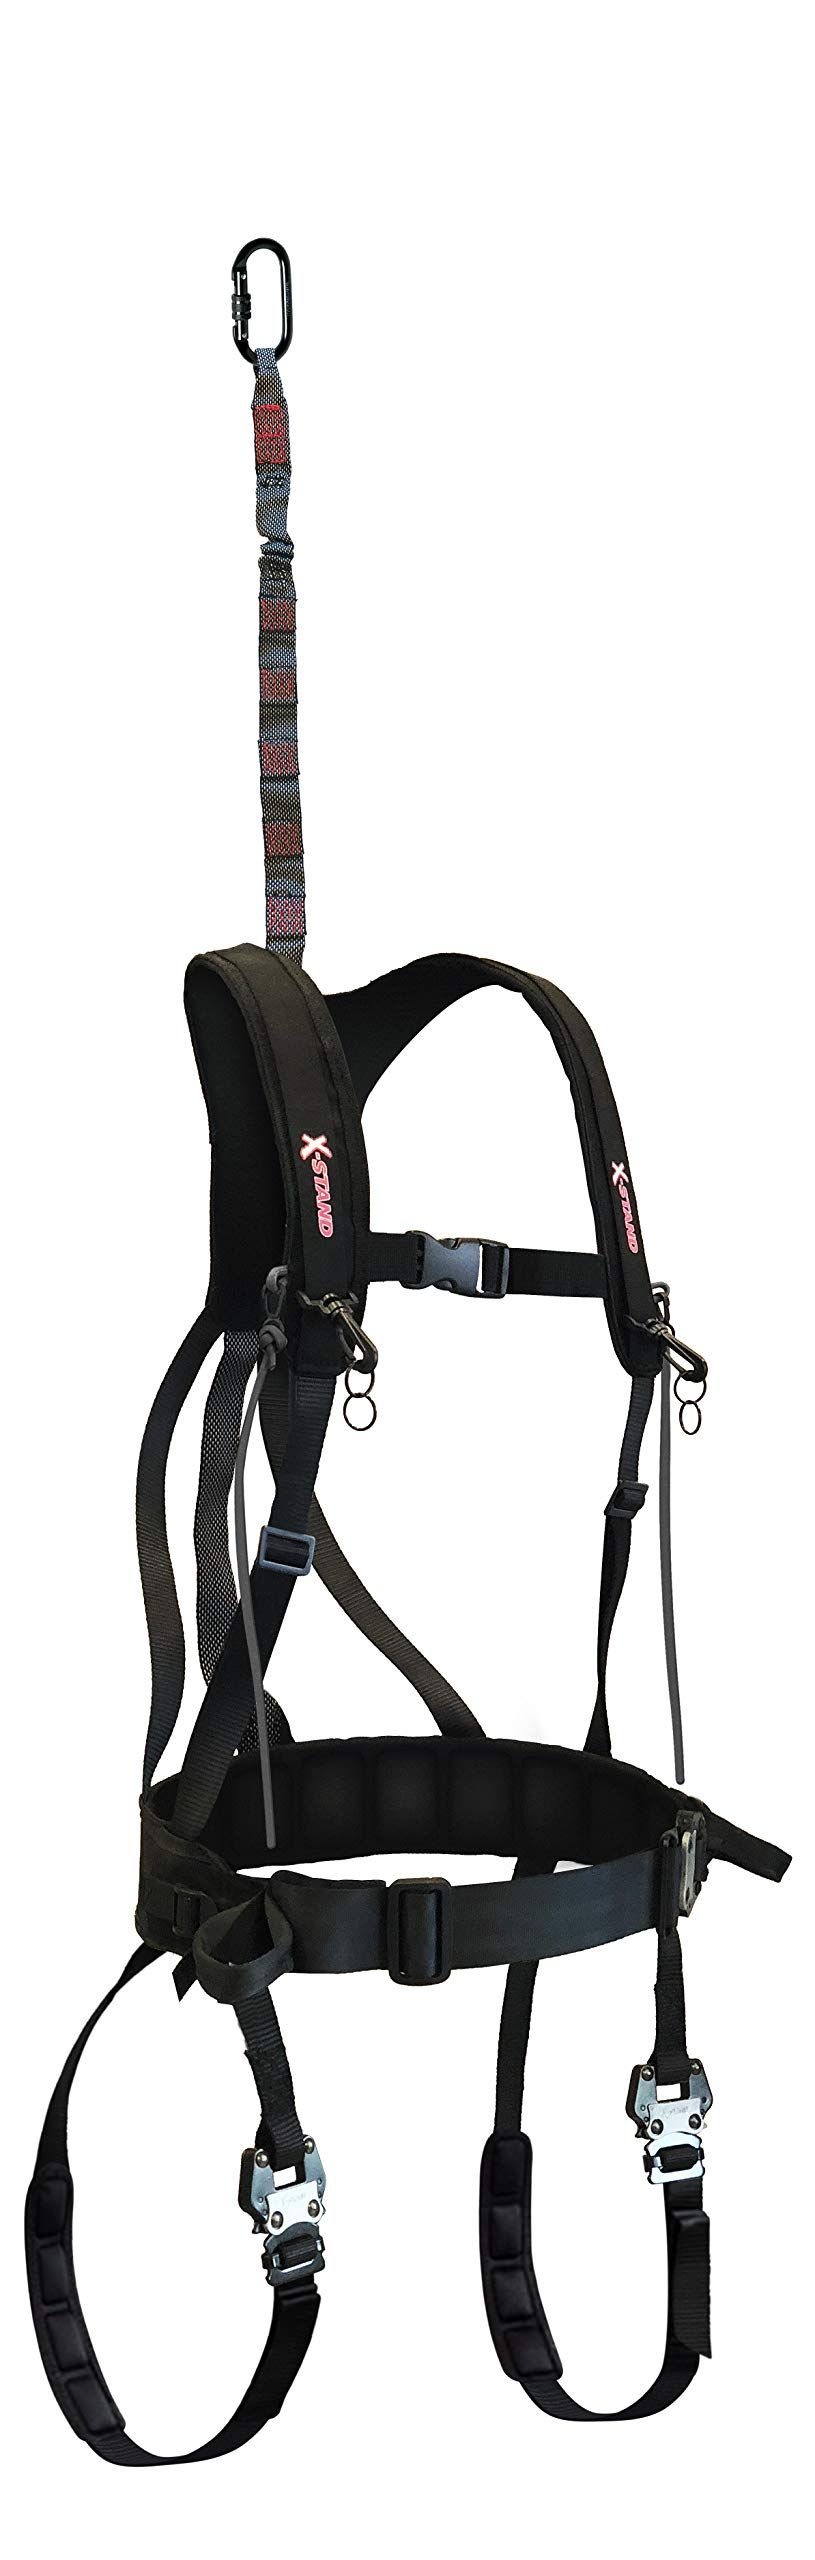 XStand Hunting Tree Stand Safety Harness https